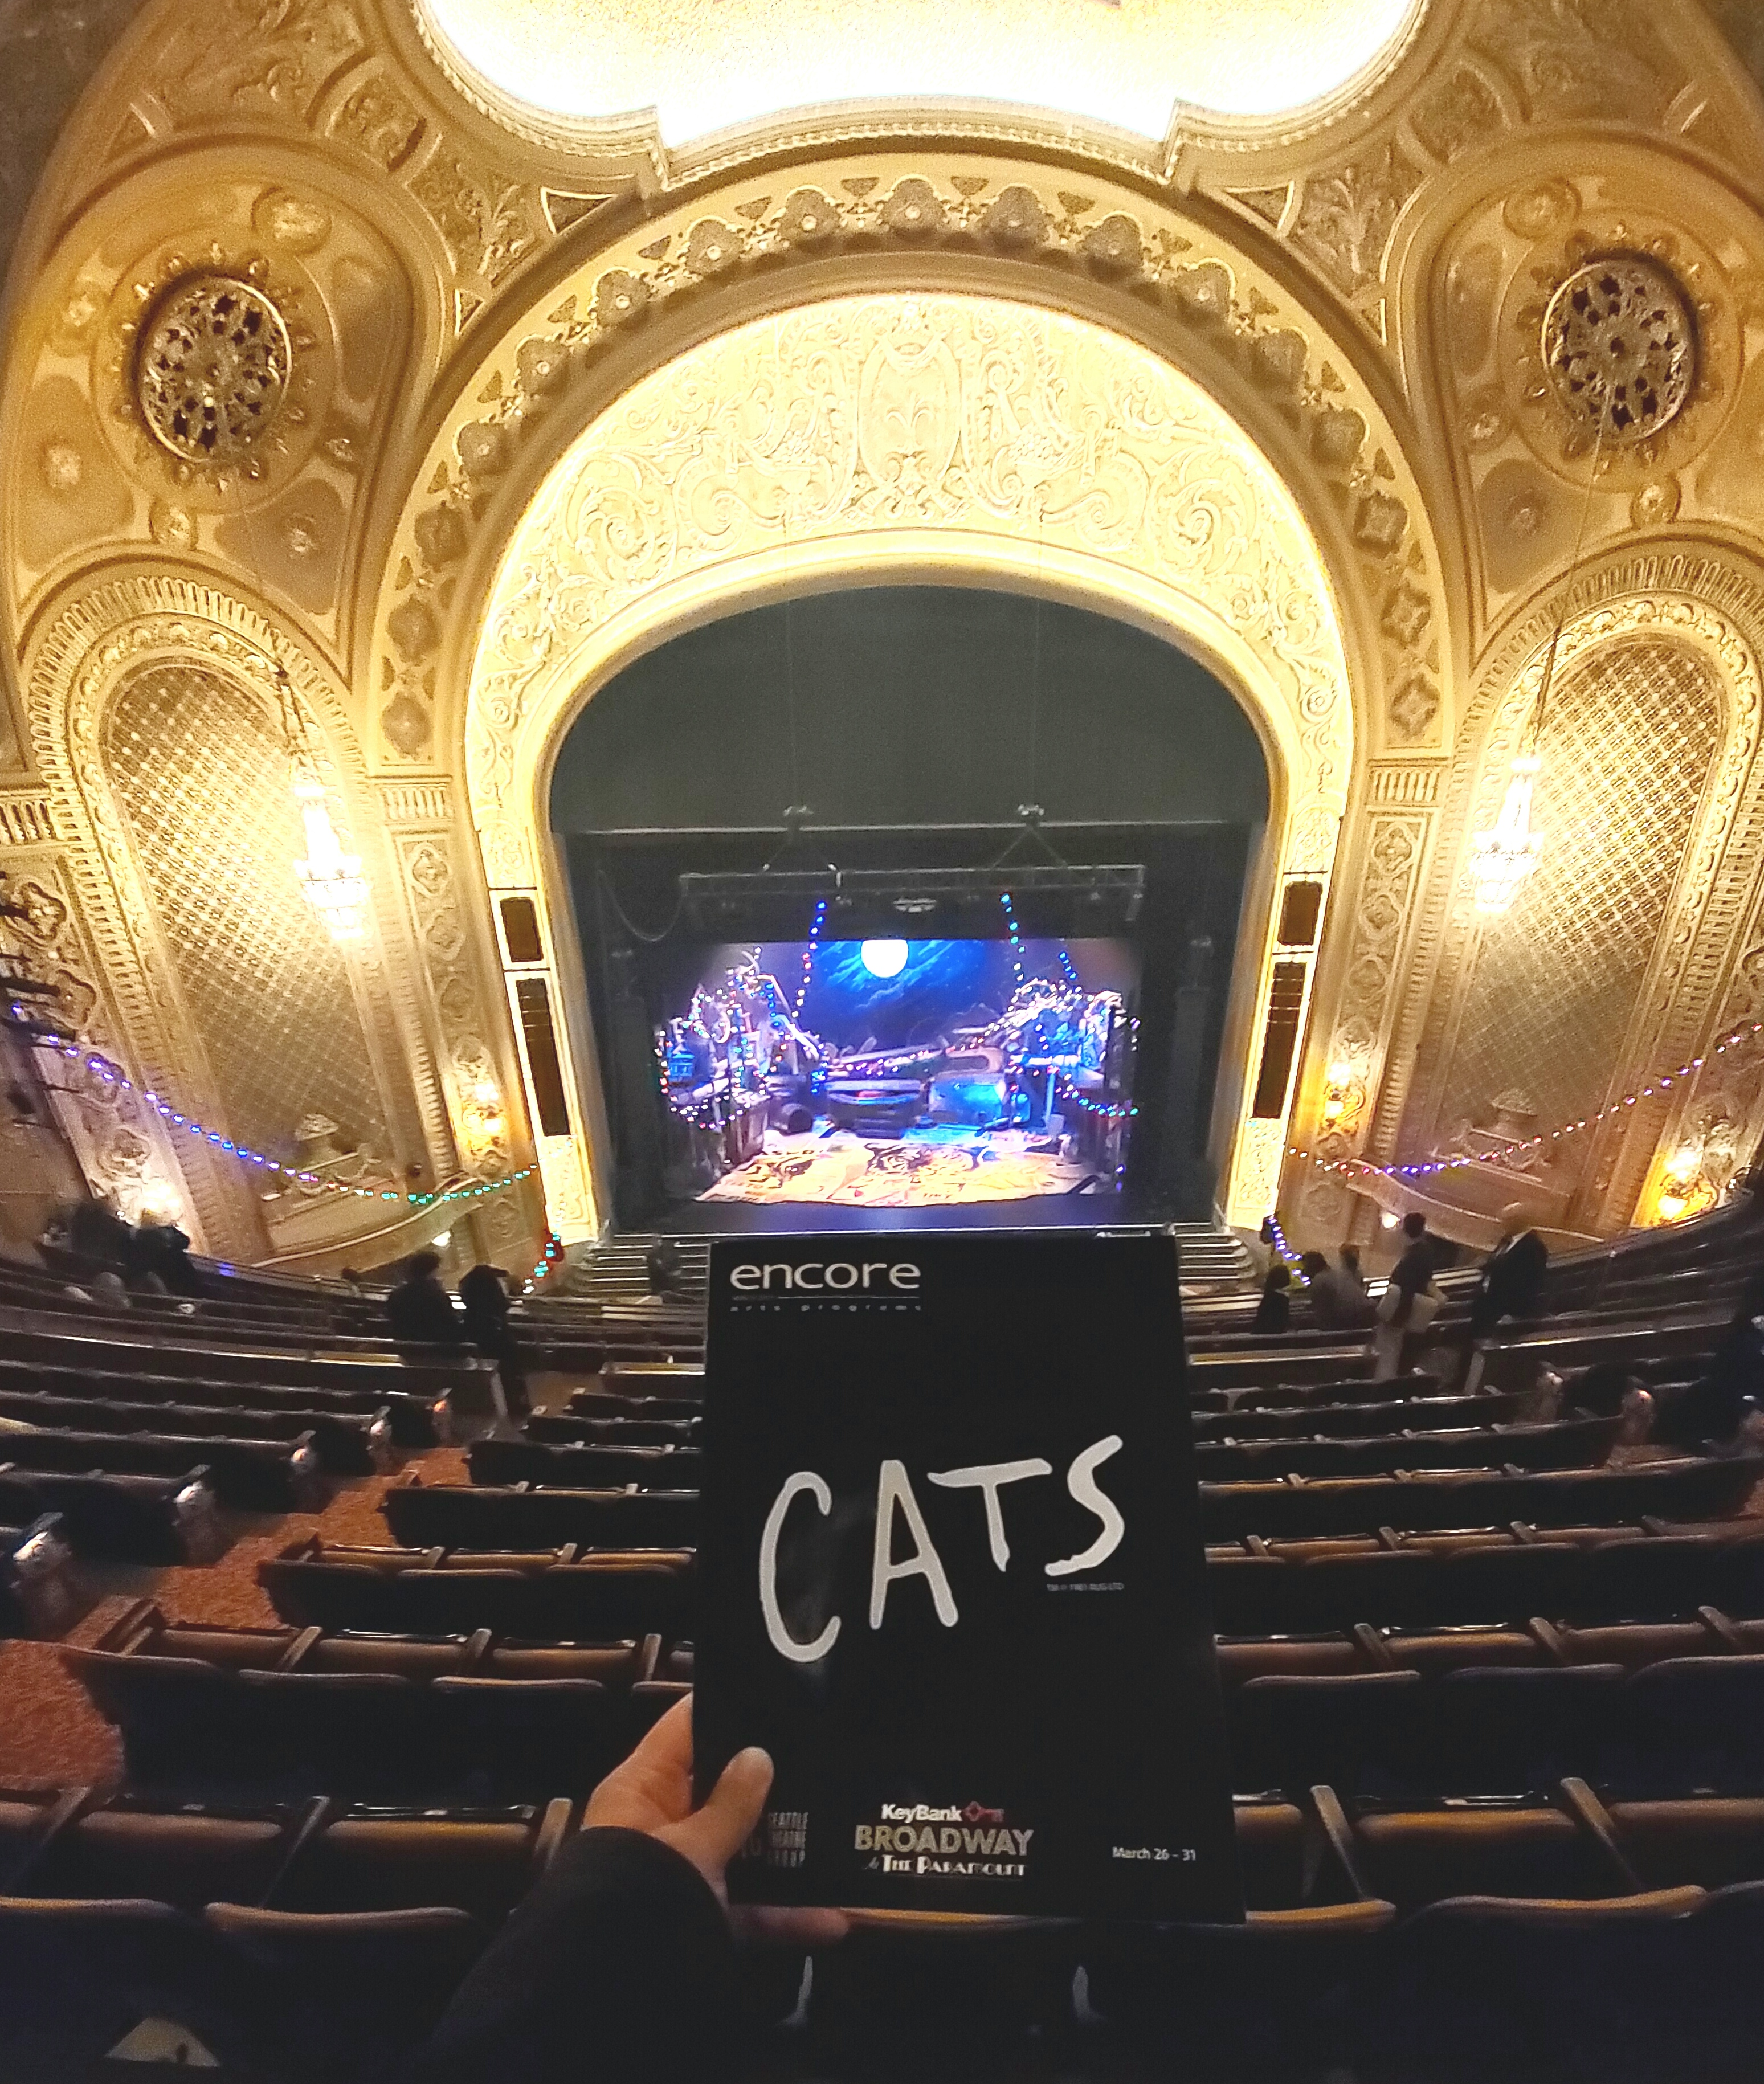 @CatsBroadway w/ @STGPresents in #Paramount Theatre. Amazing